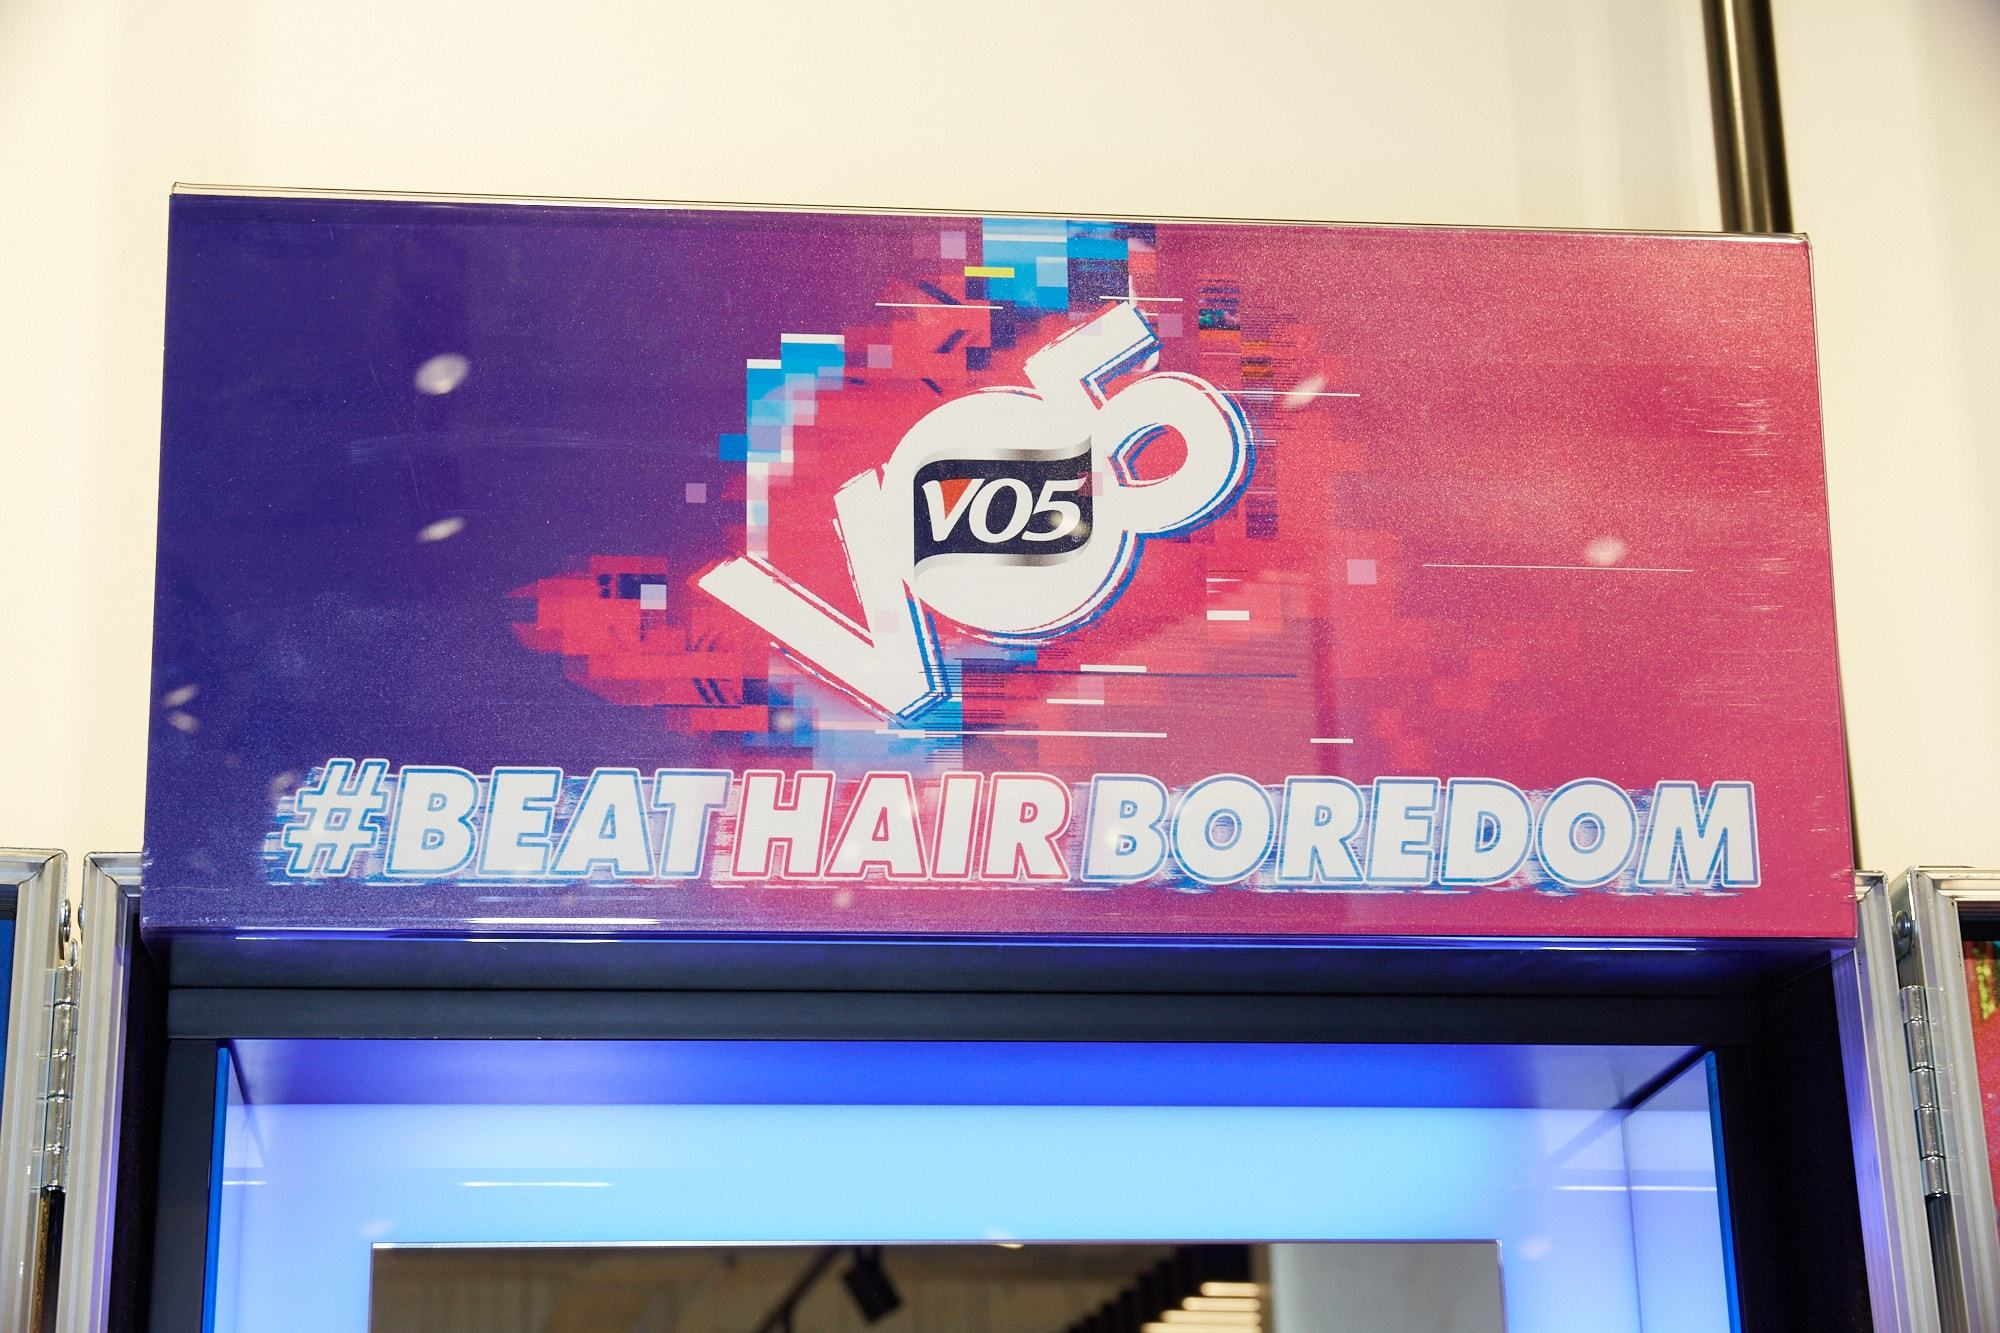 Beat hair boredom VO5 sign at New Look TCR store opening